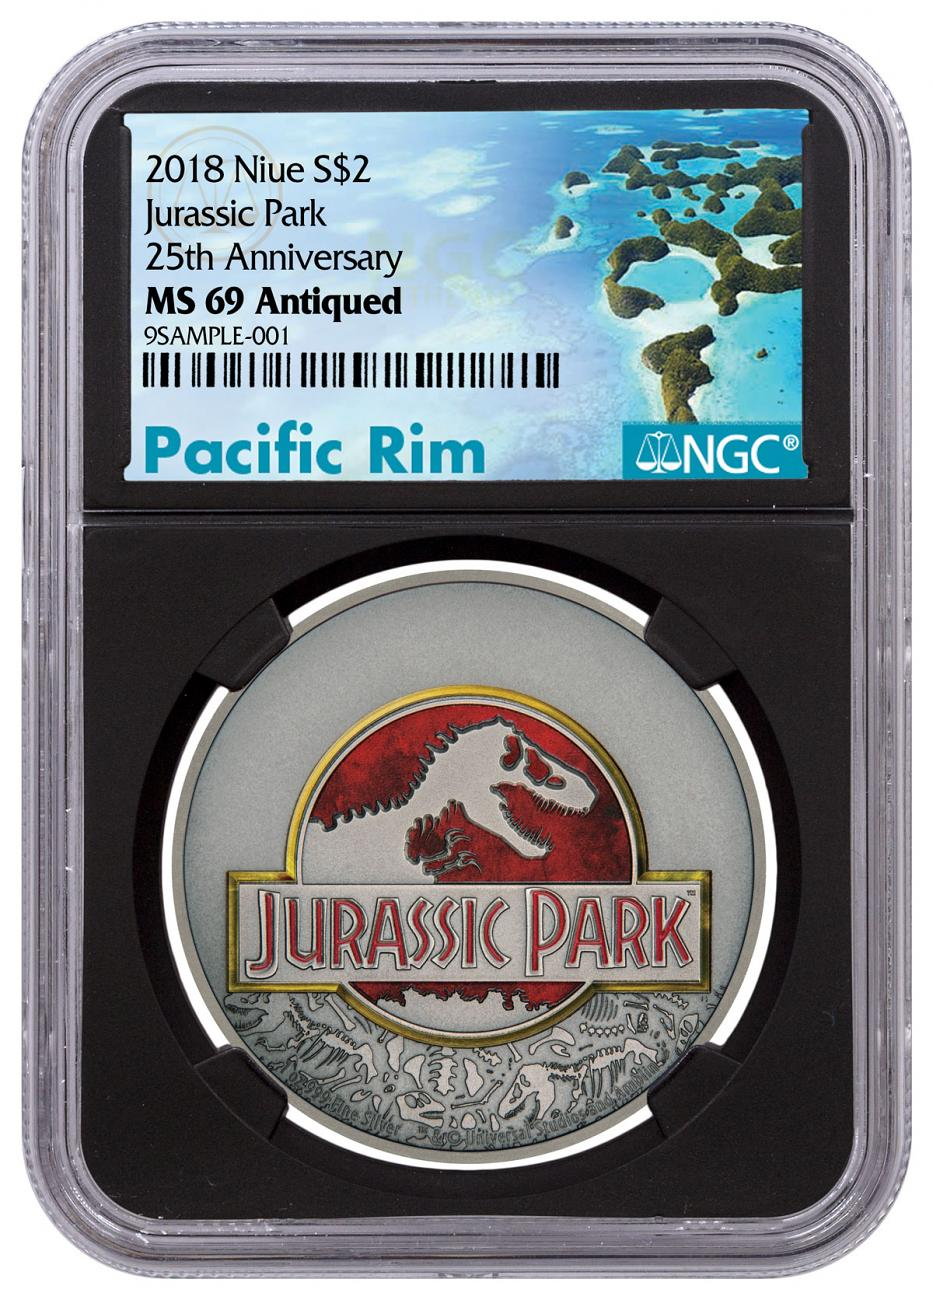 2018 Niue Jurassic Park 25th Anniversary 1 oz Silver Colorized Antiqued $2 Coin NGC MS69 Black Core Holder Exclusive Pacific Rim Label